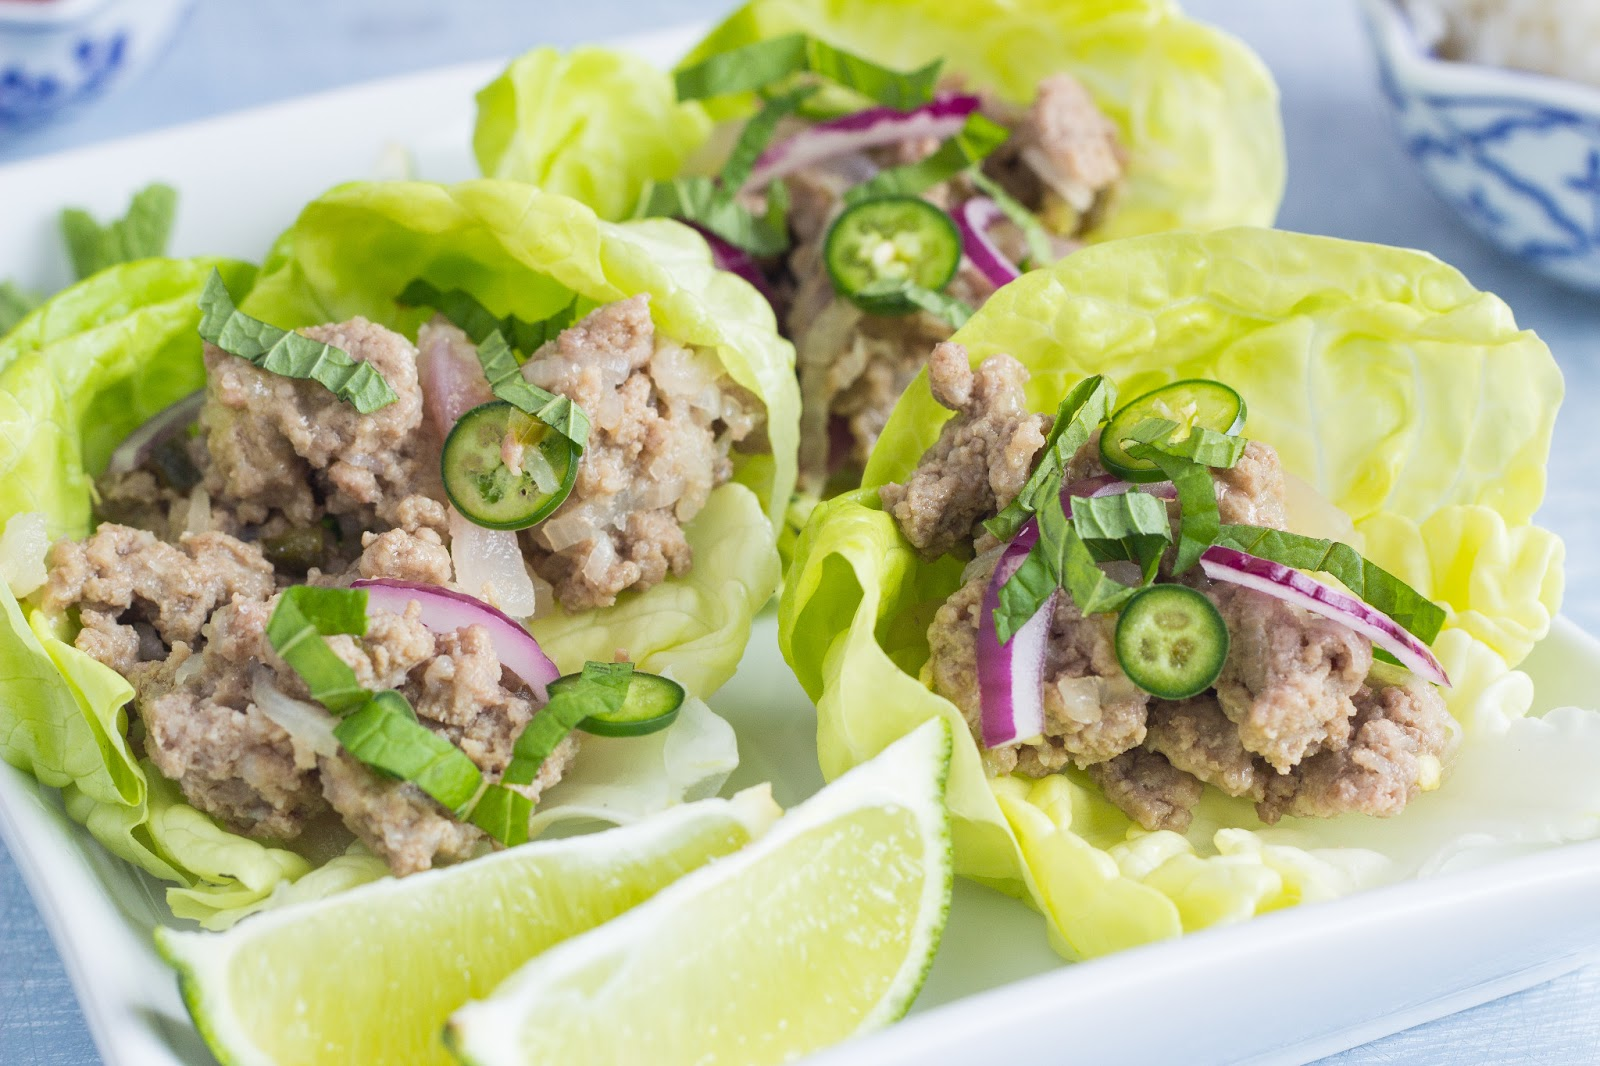 ... larb thai chicken larb scrambled egg wrap pork larb lettuce wrap